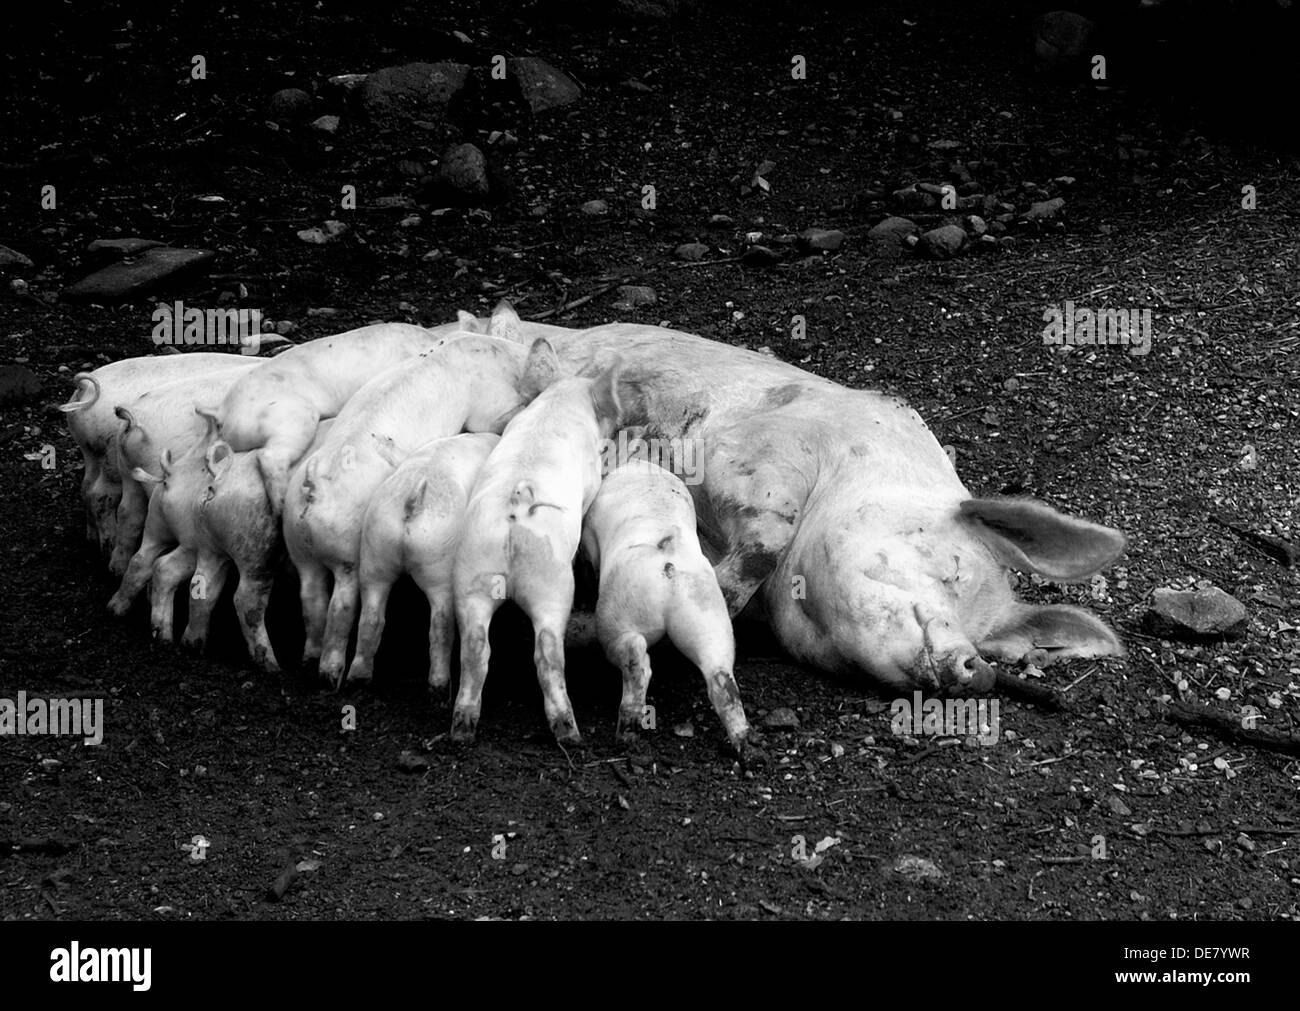 Mother pig feeding her piglets, Ballenberg, Ballenberg is an open air museum in Switzerland, More than one hundred century-old - Stock Image